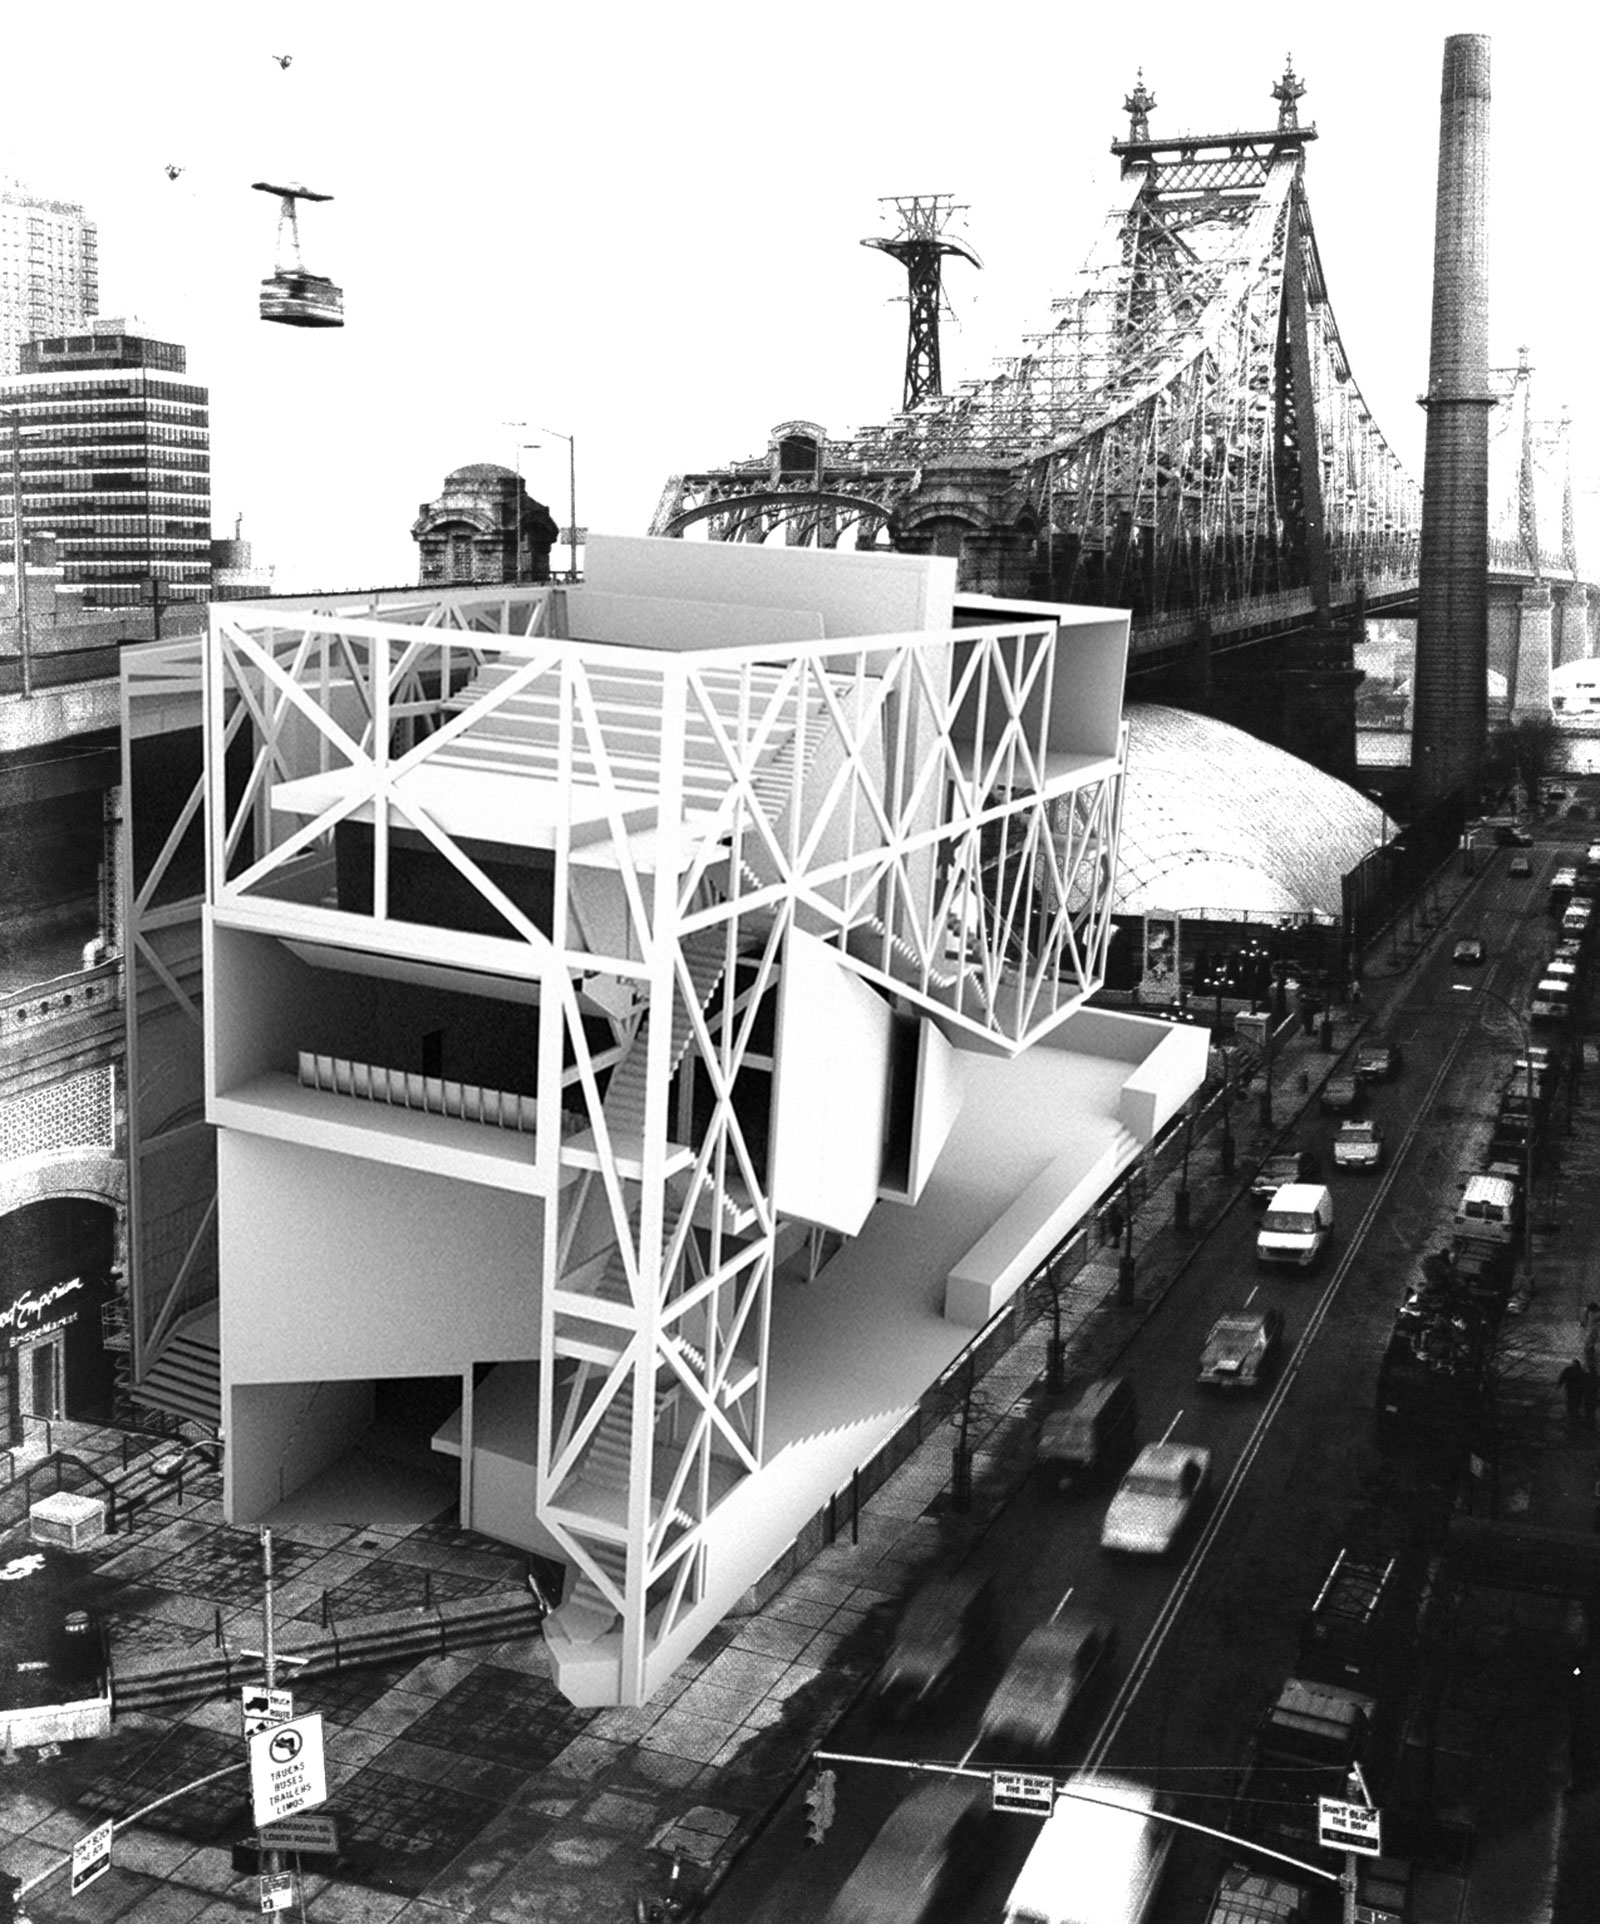 Perspective of the DM performance massing attached to the Queensboro bridge viewed from above the street intersection